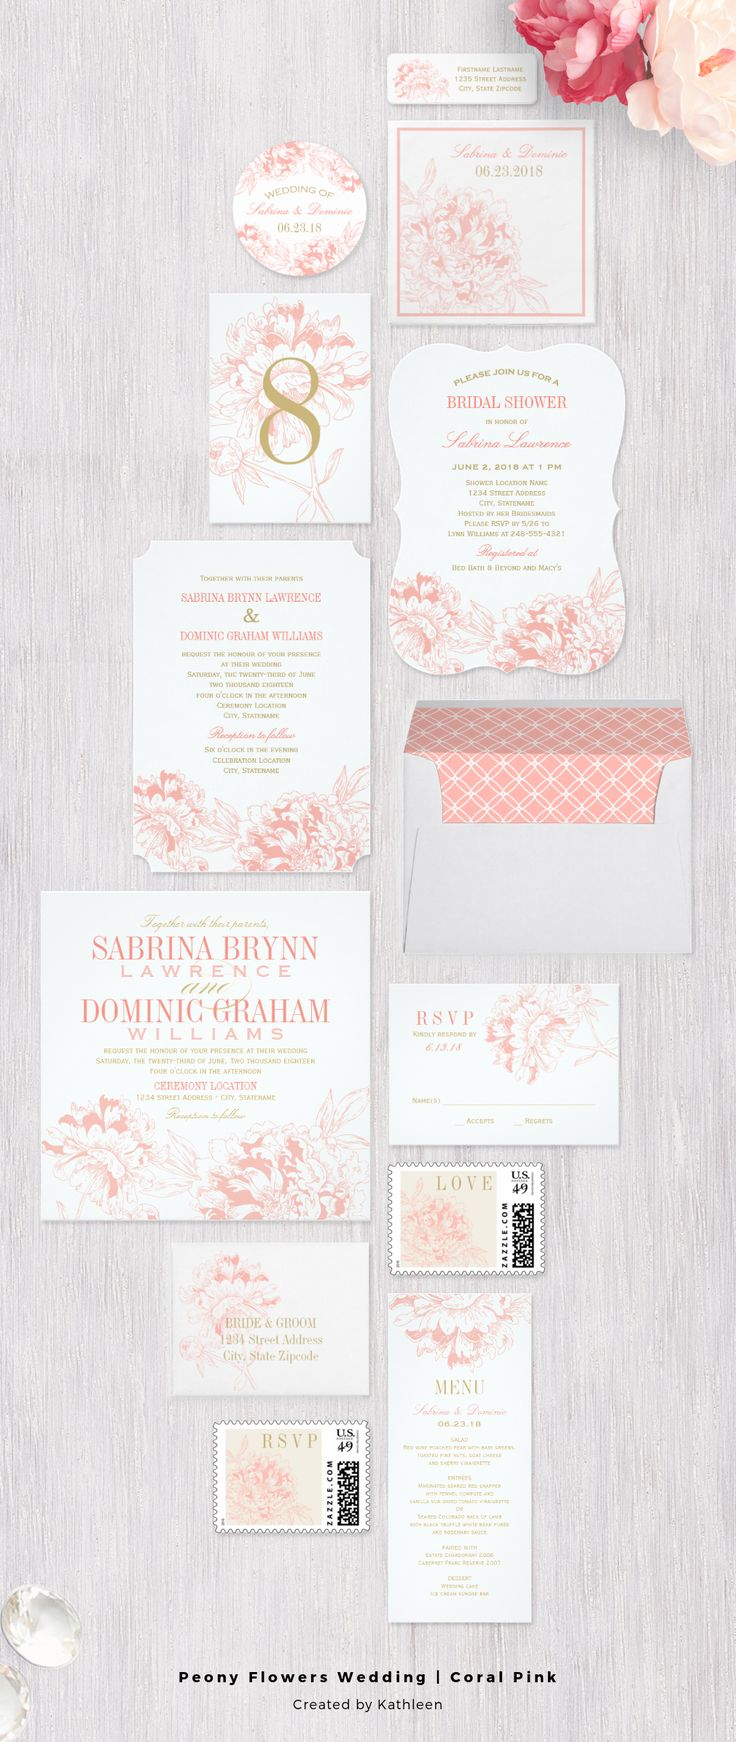 Romantic floral peony wedding invitation set collection in coral peach / pink, white and gold color scheme.